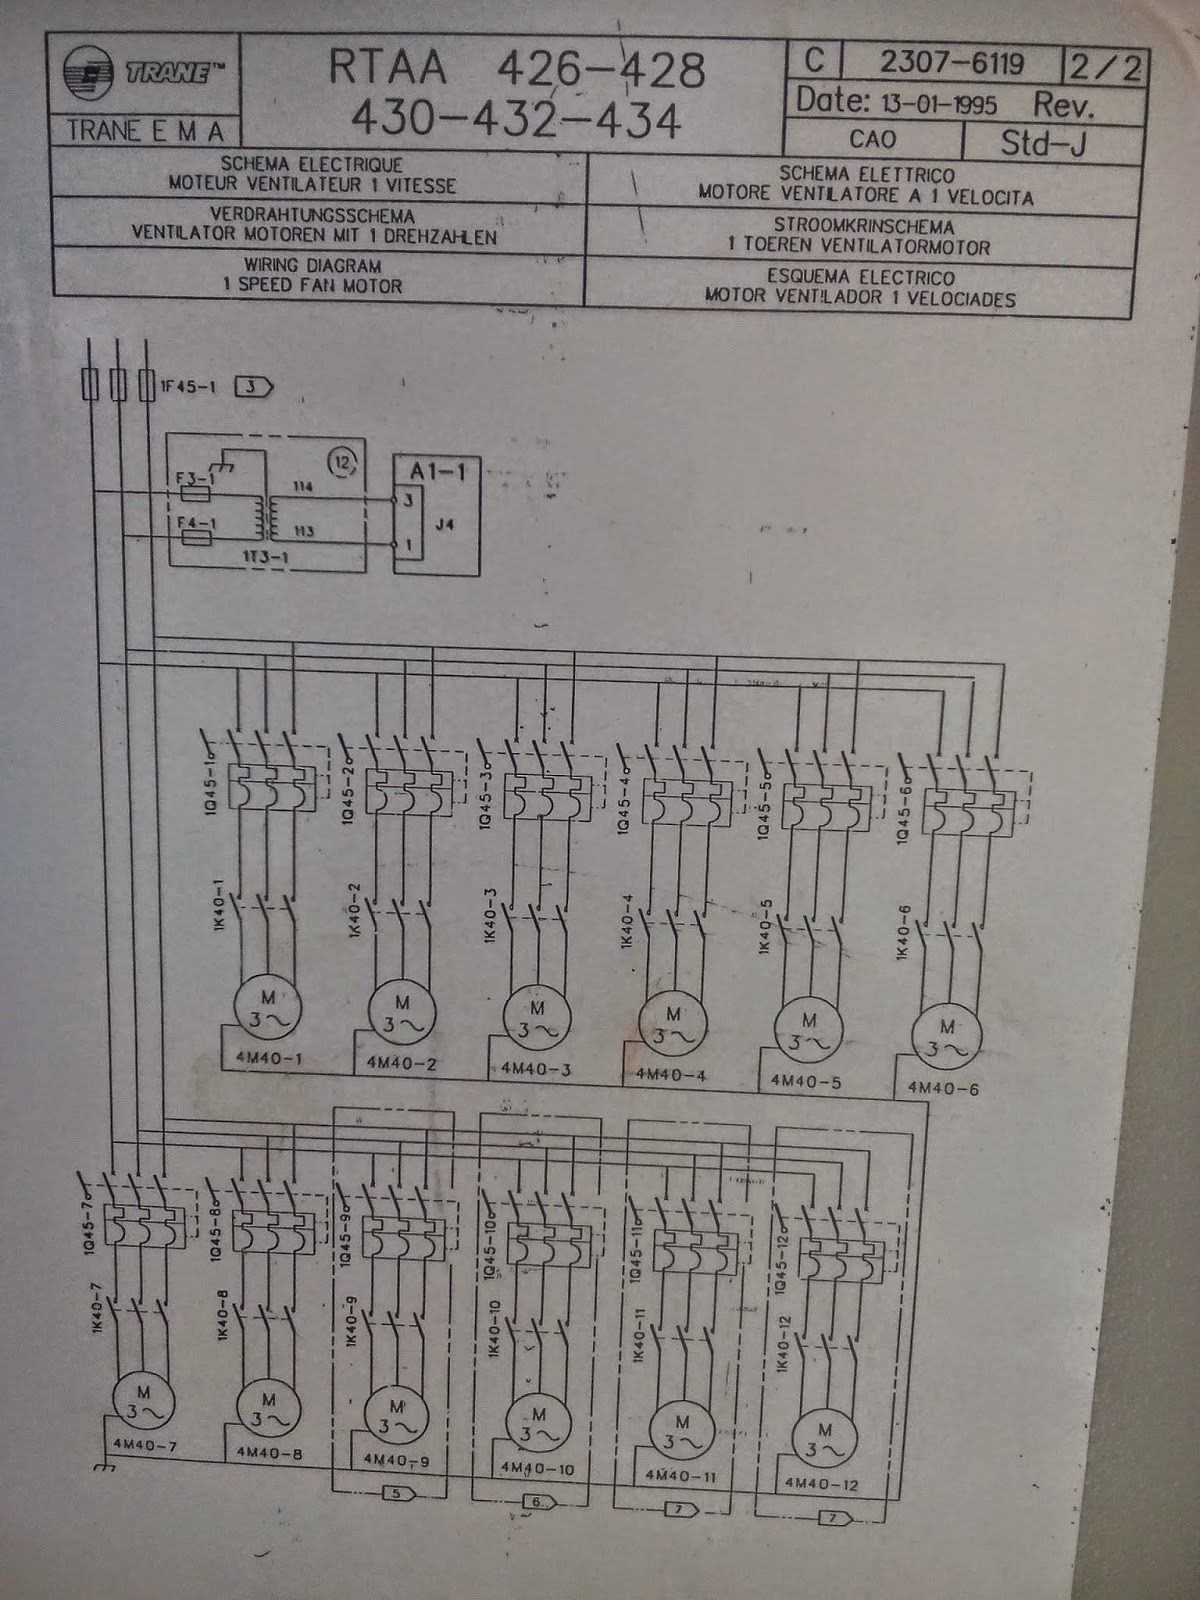 Chiller Wiring Diagram : hvac chillers heatpump trane chiller air cooled control ~ A.2002-acura-tl-radio.info Haus und Dekorationen